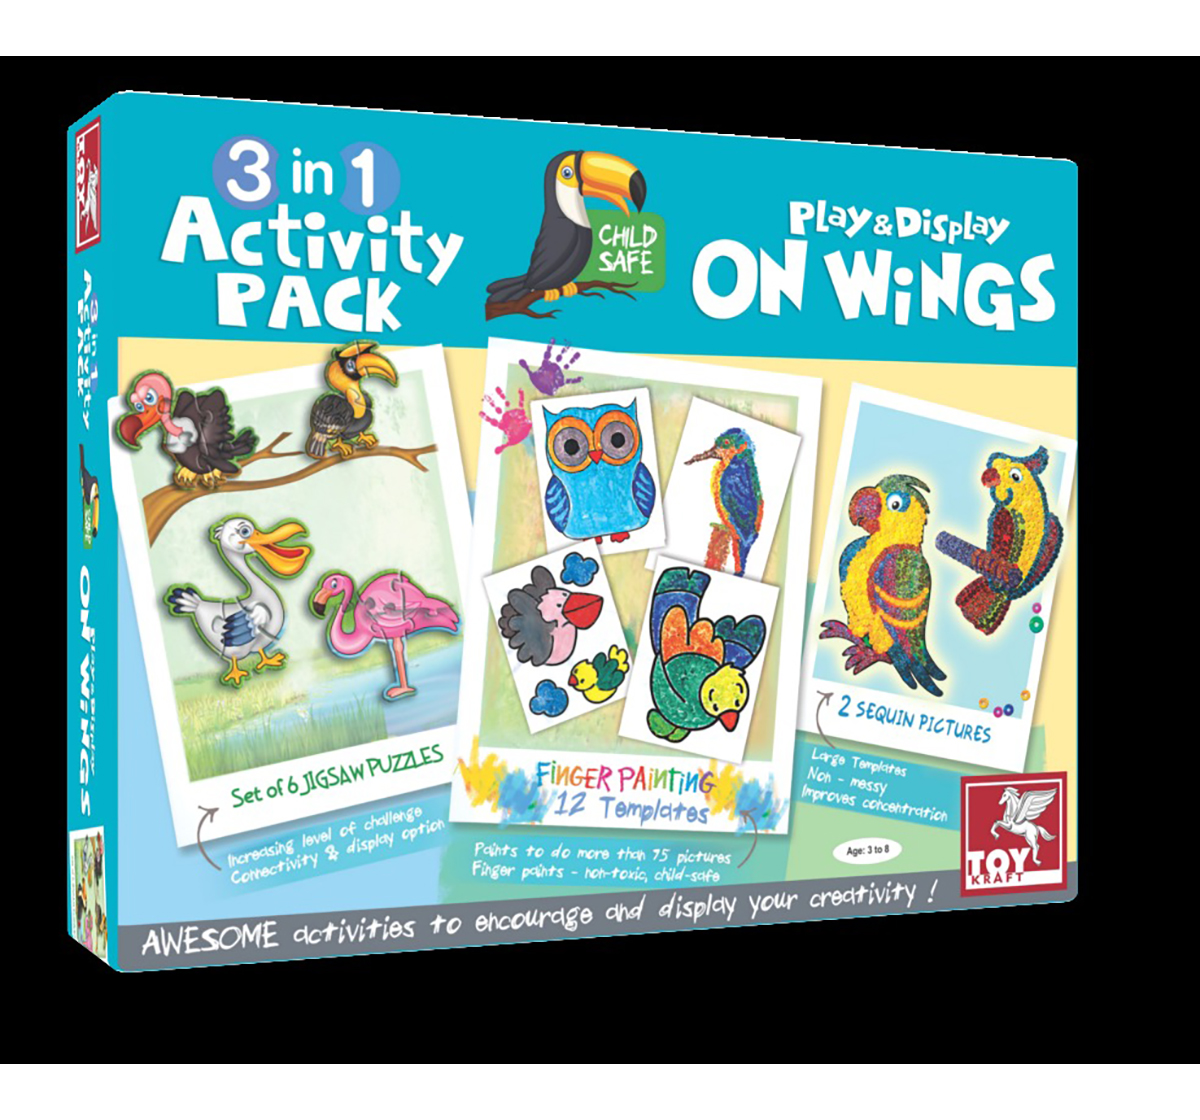 Toy Kraft | Toy Kraft 3 In 1 Activity – On Wings DIY Art & Craft Kits for Kids age 3Y+